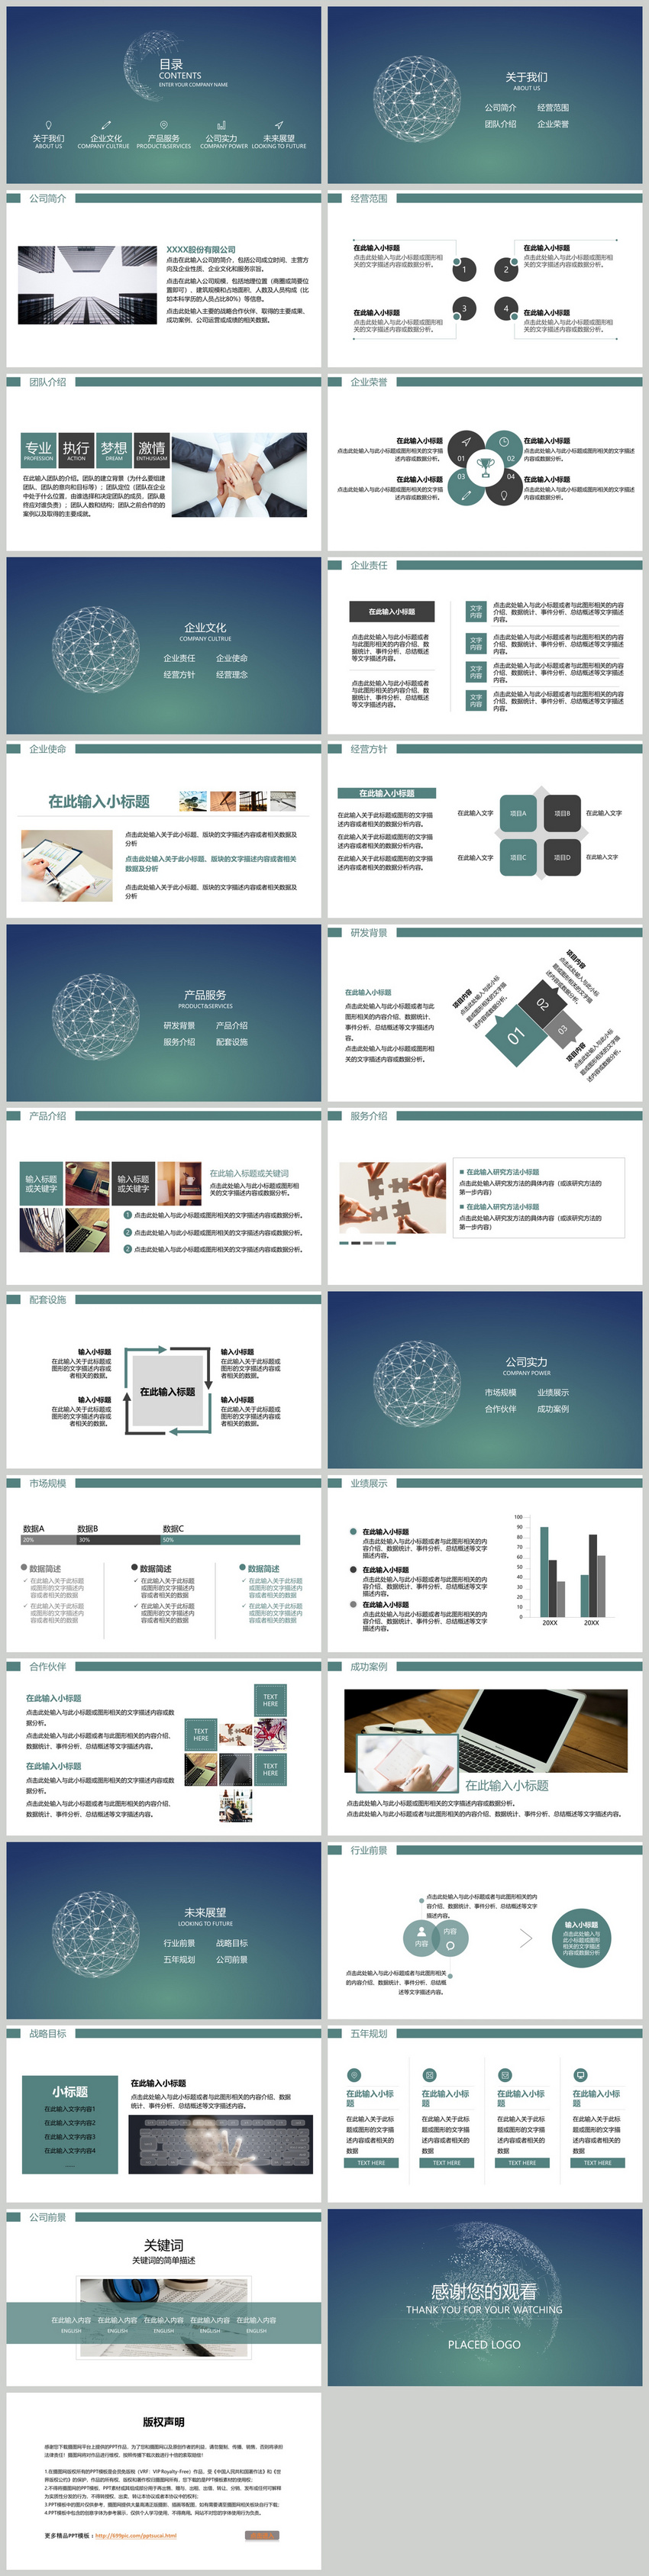 brief companies introduce corporate ppt templates powerpoint